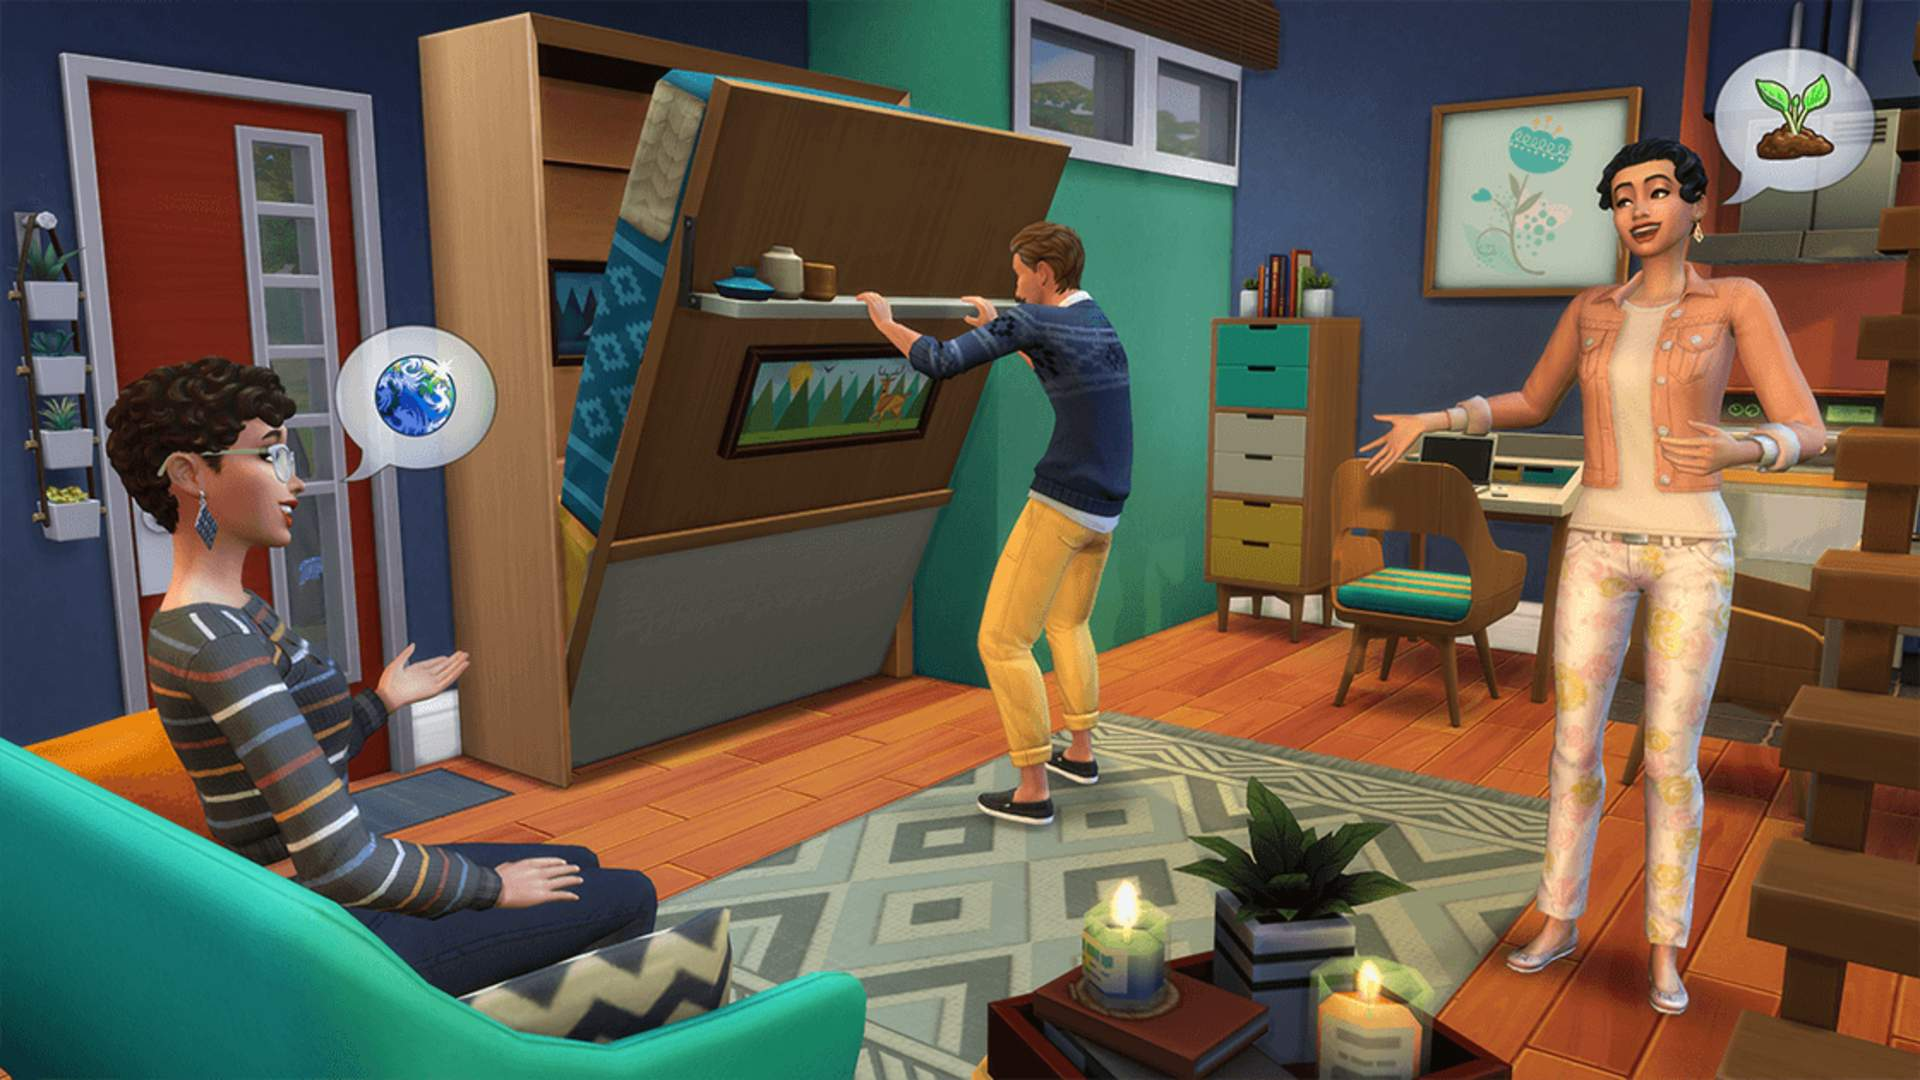 An Upcoming Sims Four Replace Lets You Construct Tiny Homes For Your Sims to Snuggle In